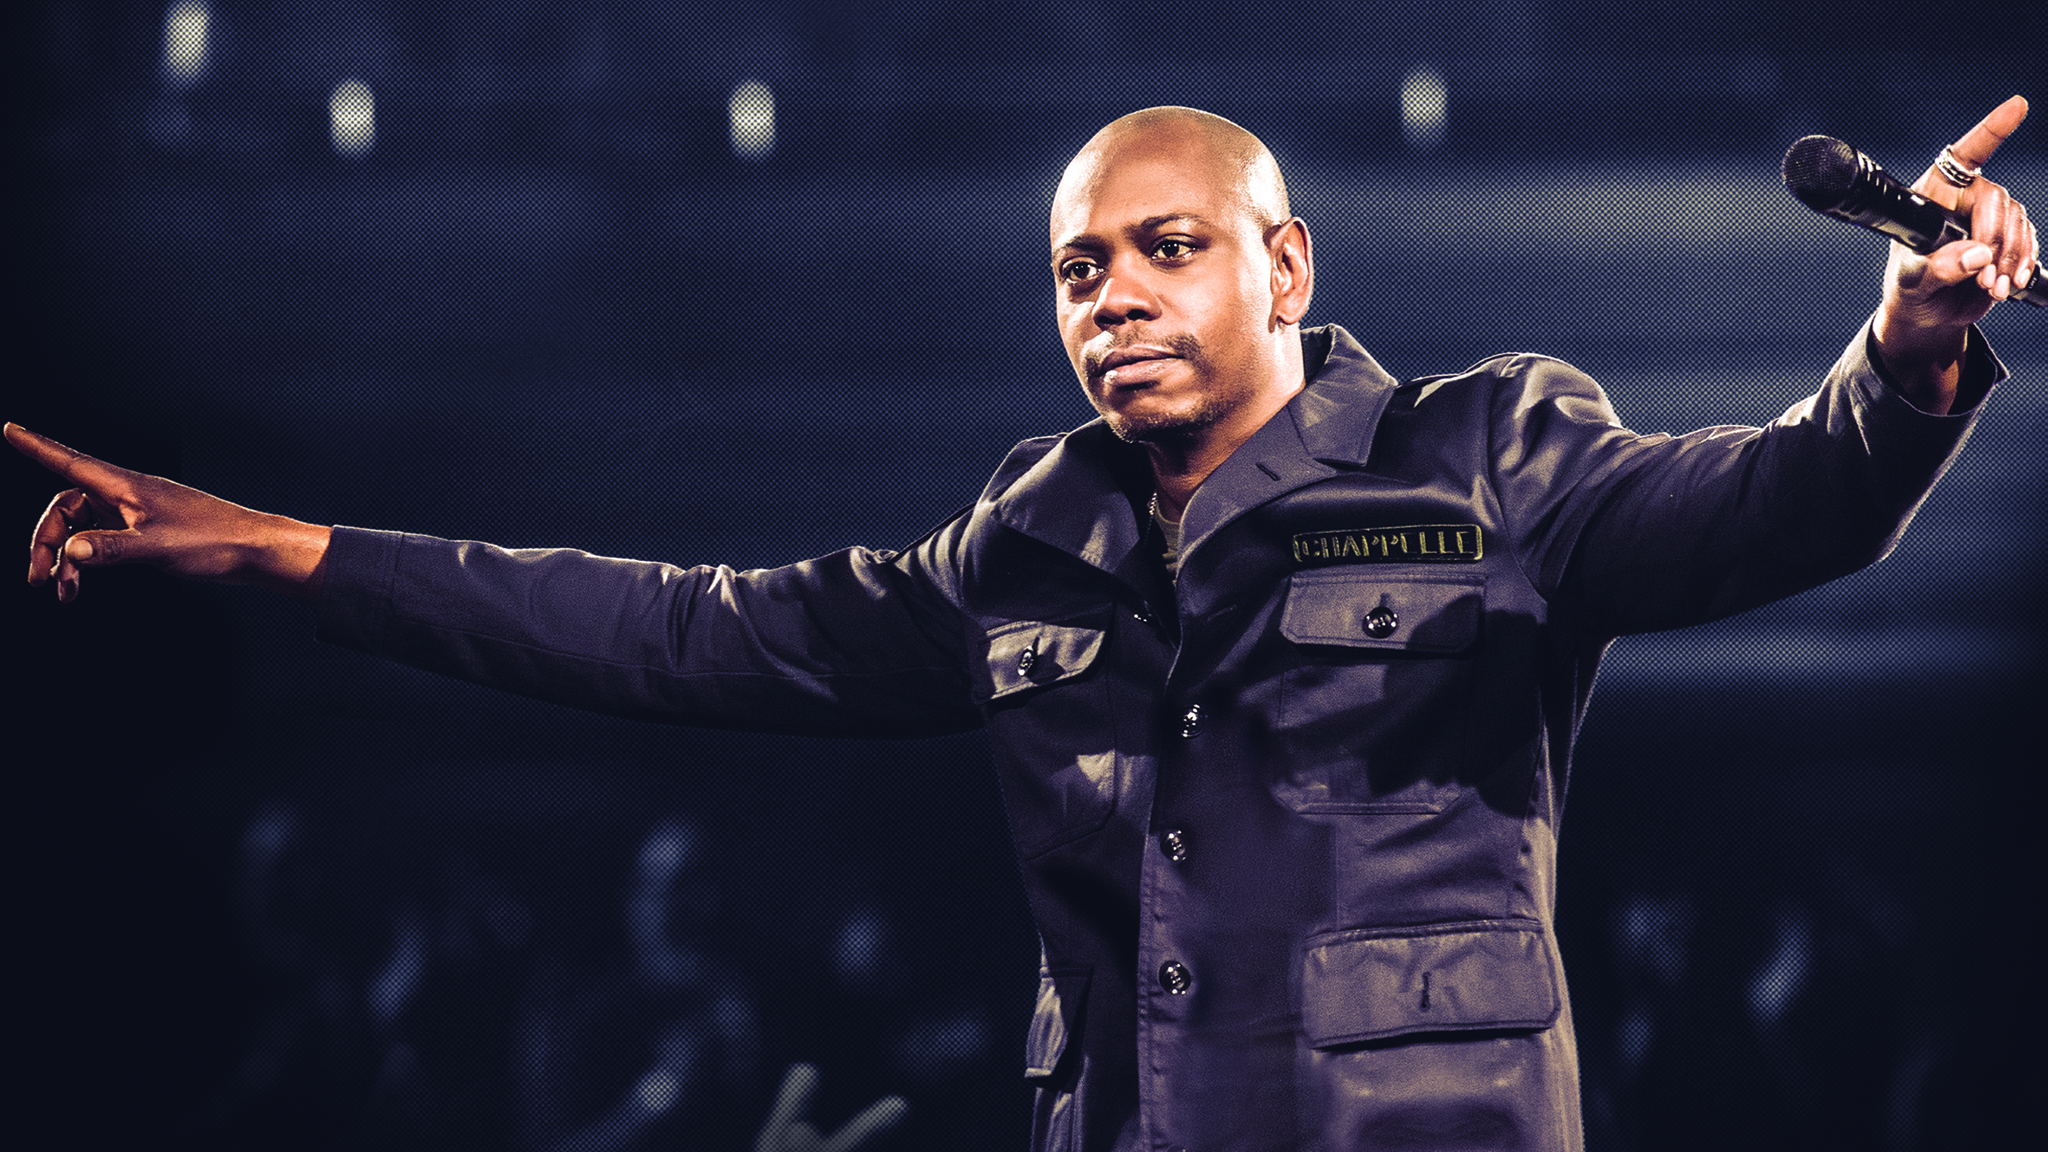 Dave Chappelle to perform 2 more shows at the Aztec Theatre this week; tickets go on sale at 3 p.m.